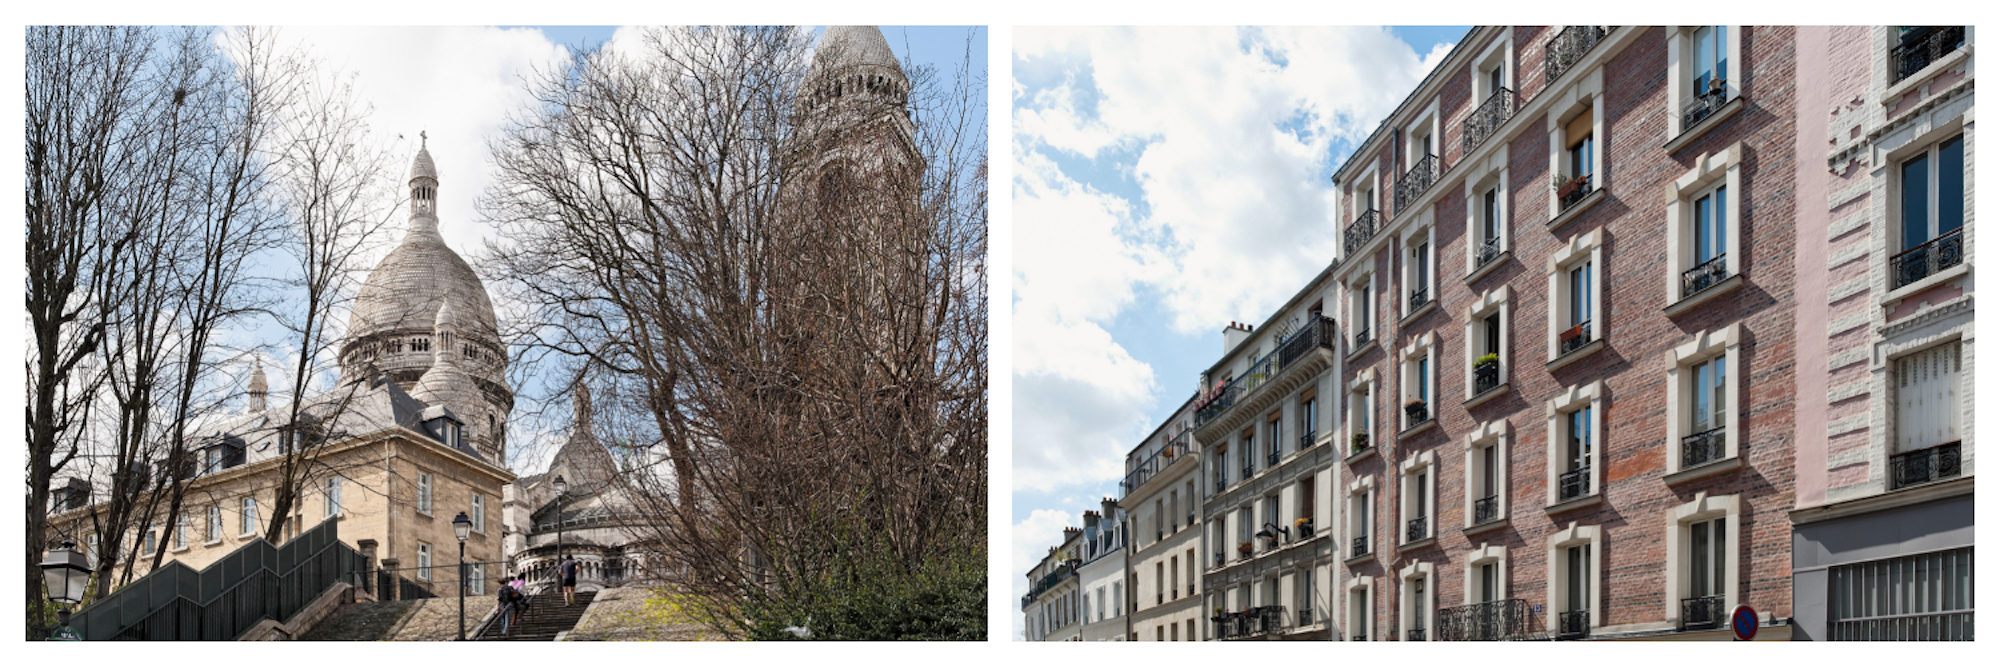 A view of the Sacré Coeur Basilica through bare trees in the winter in Paris (left). A row of apartment buildings that line a street in Paris (right).